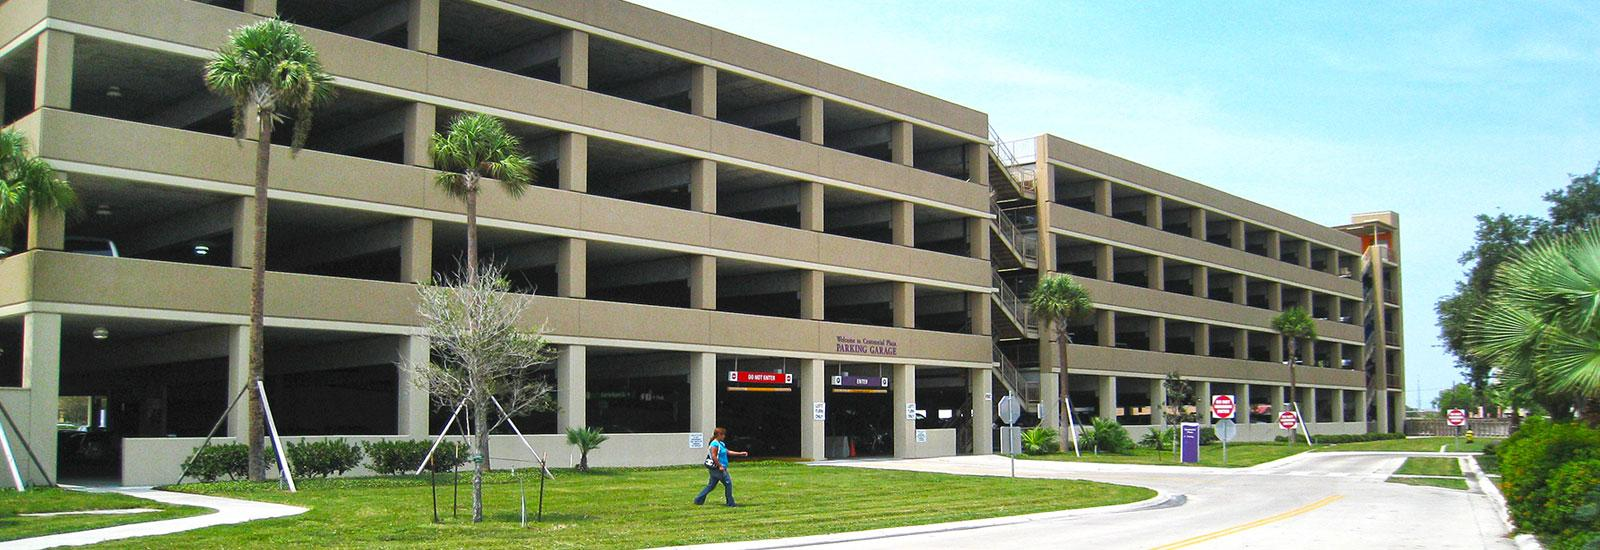 Parking Assessment and Repairs